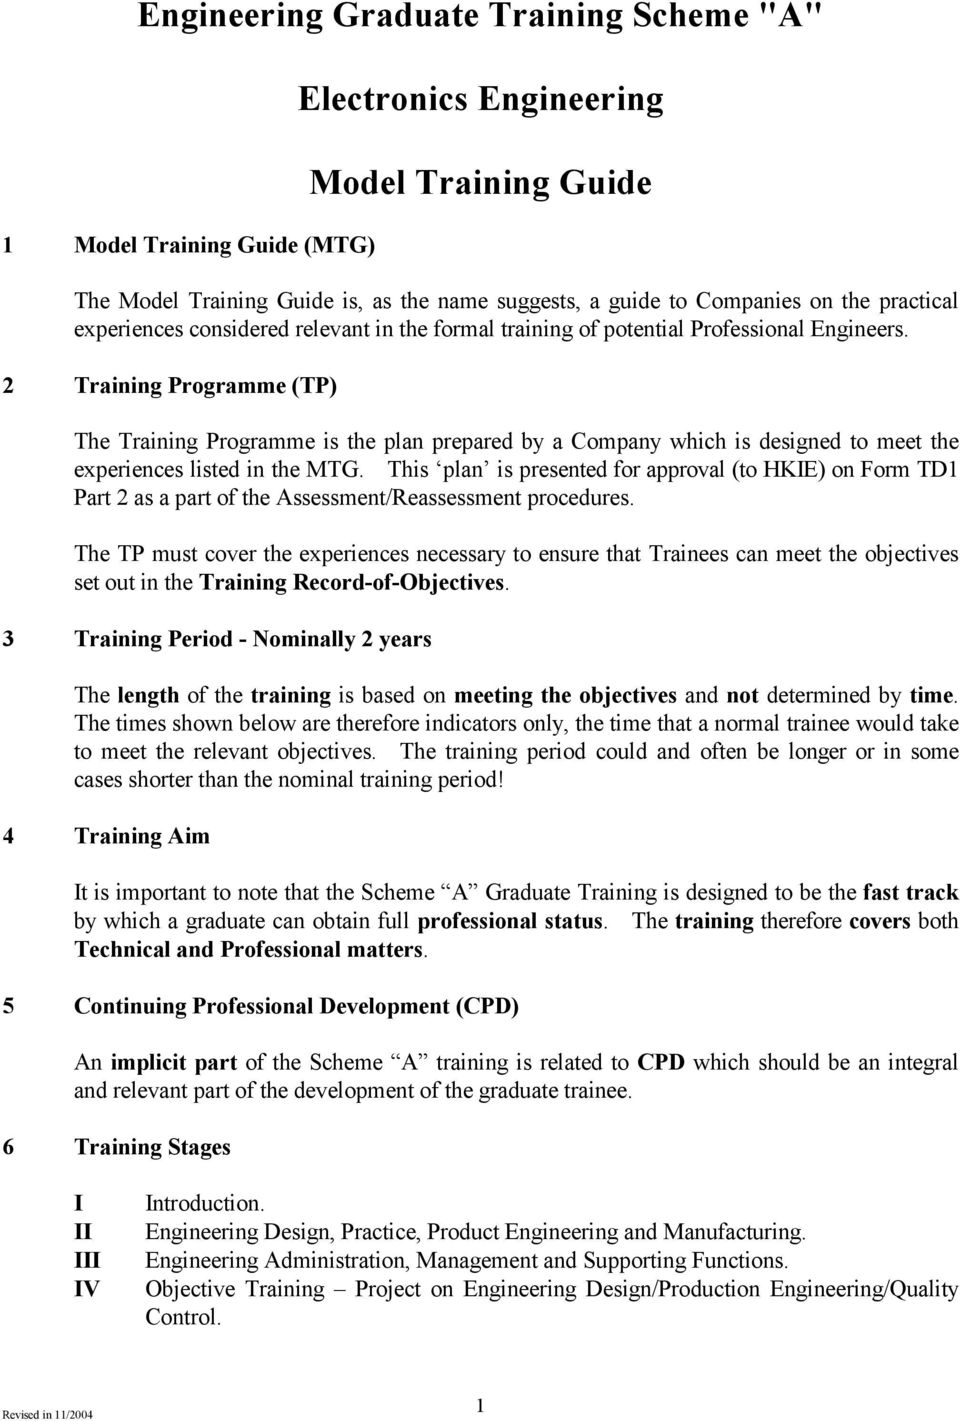 2 Training Programme (TP) The Training Programme is the plan prepared by a Company which is designed to meet the experiences listed in the MTG.